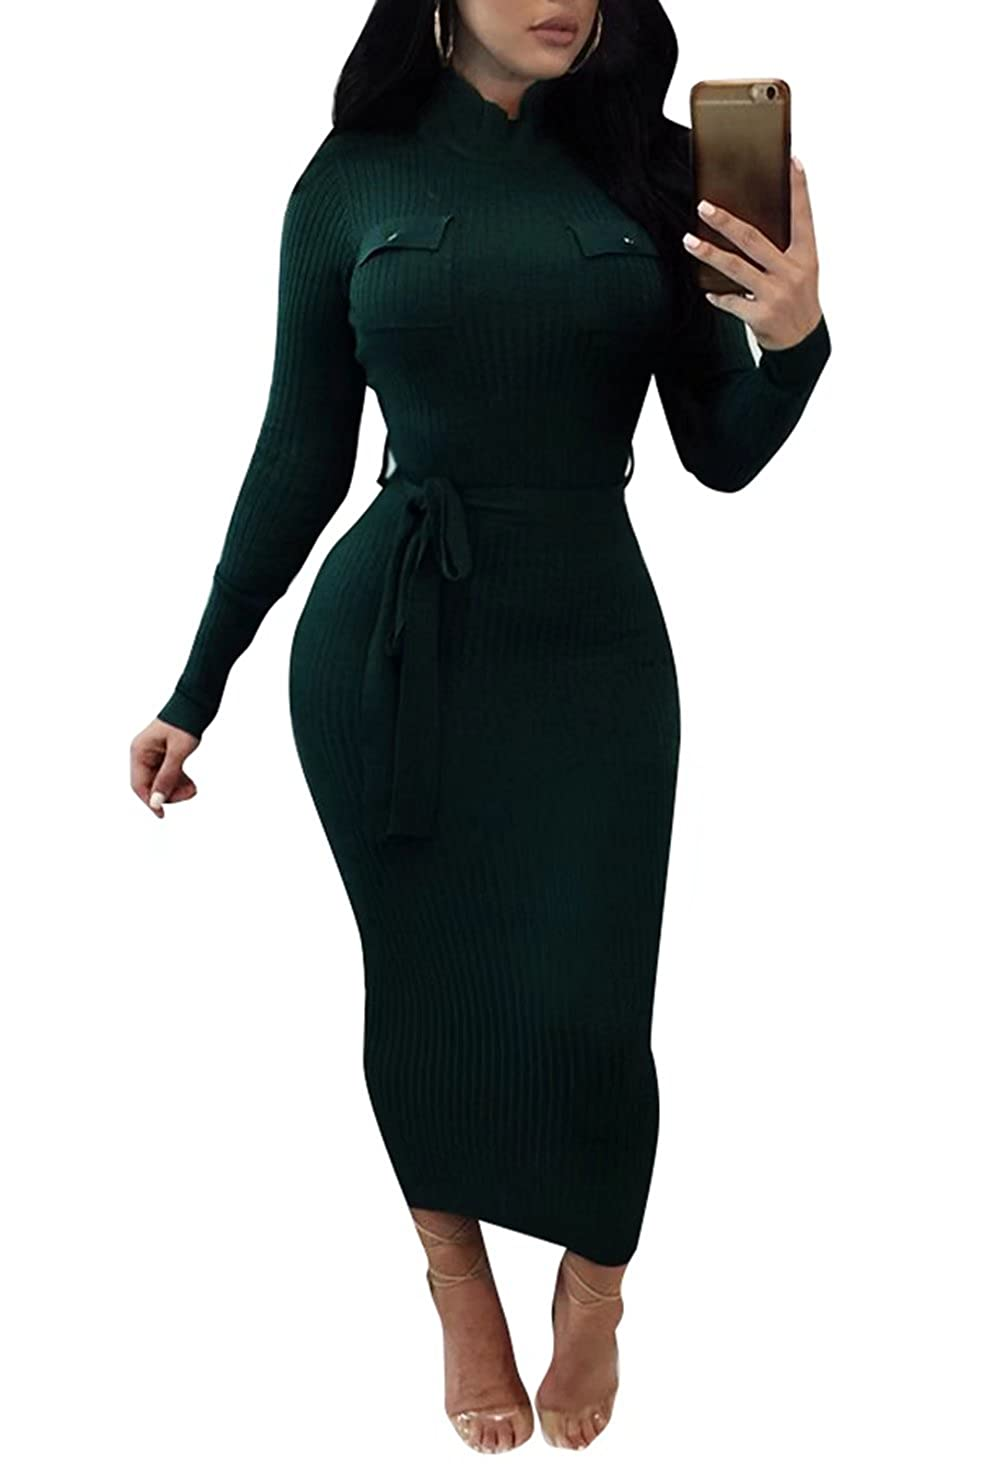 ad29413933 FOUNDO Women s Sexy Turtleneck Ribbed Long Sleeve Belt Bodycon Sweater Dress  Green S at Amazon Women s Clothing store